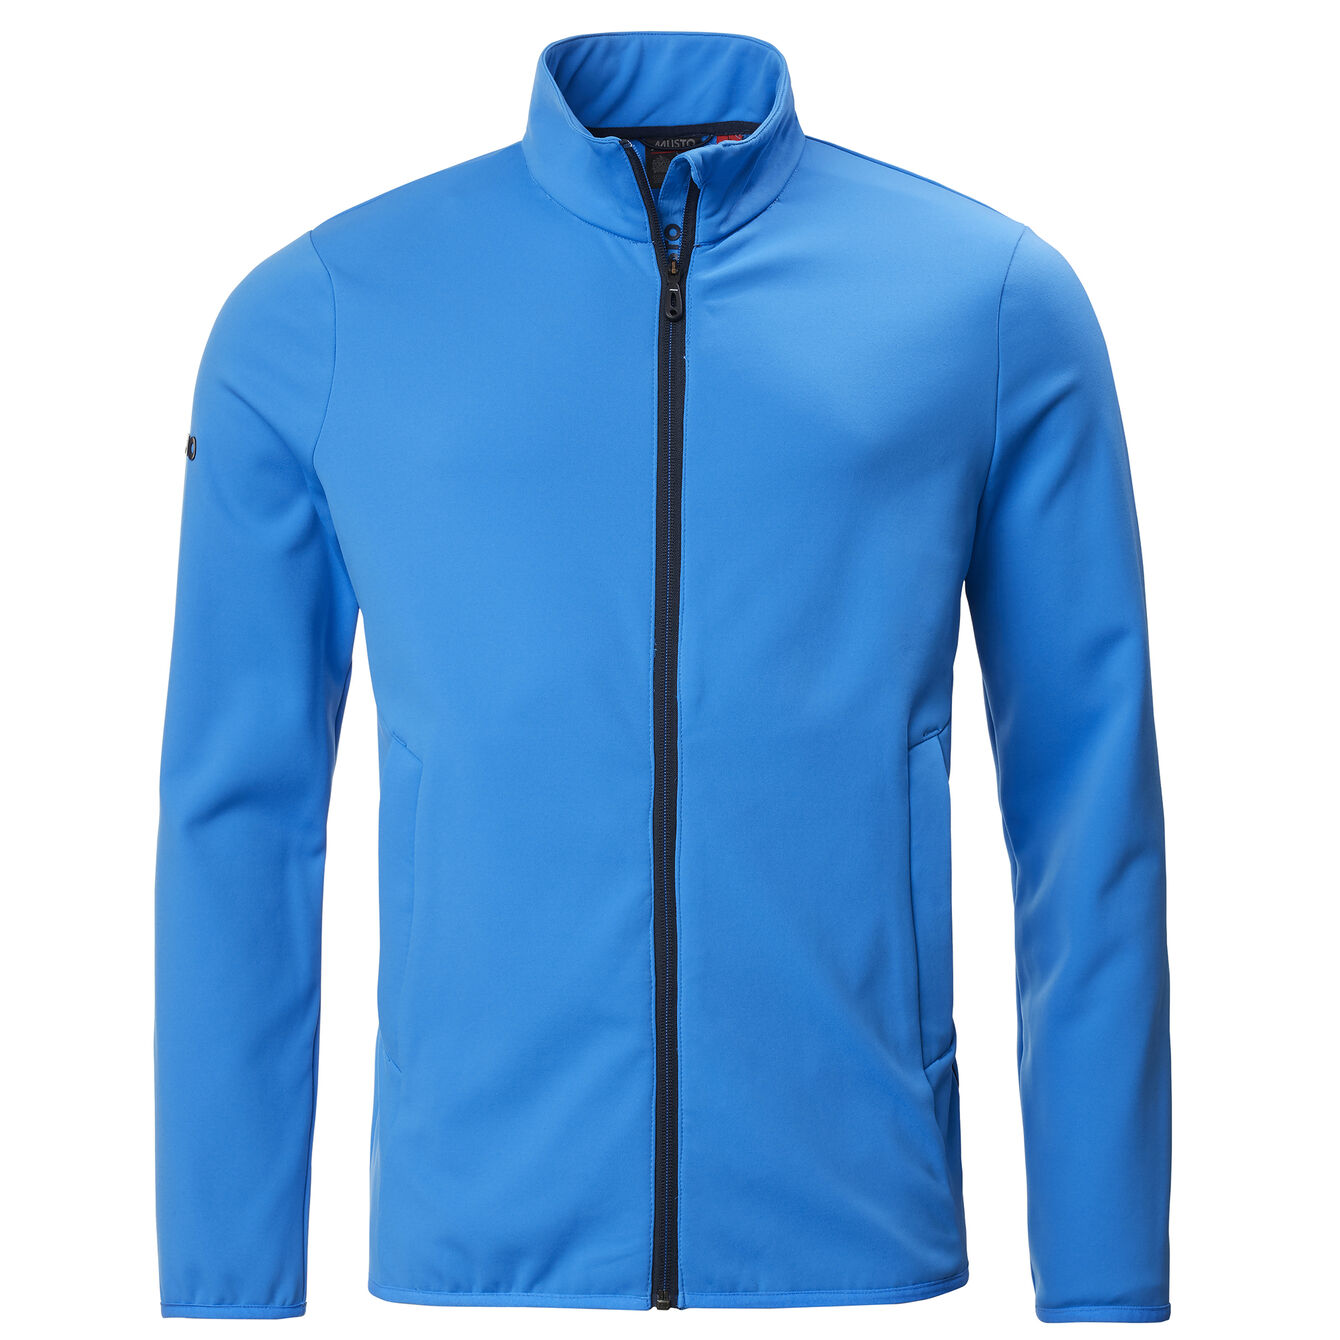 SYNERGY FLEECE JACKET